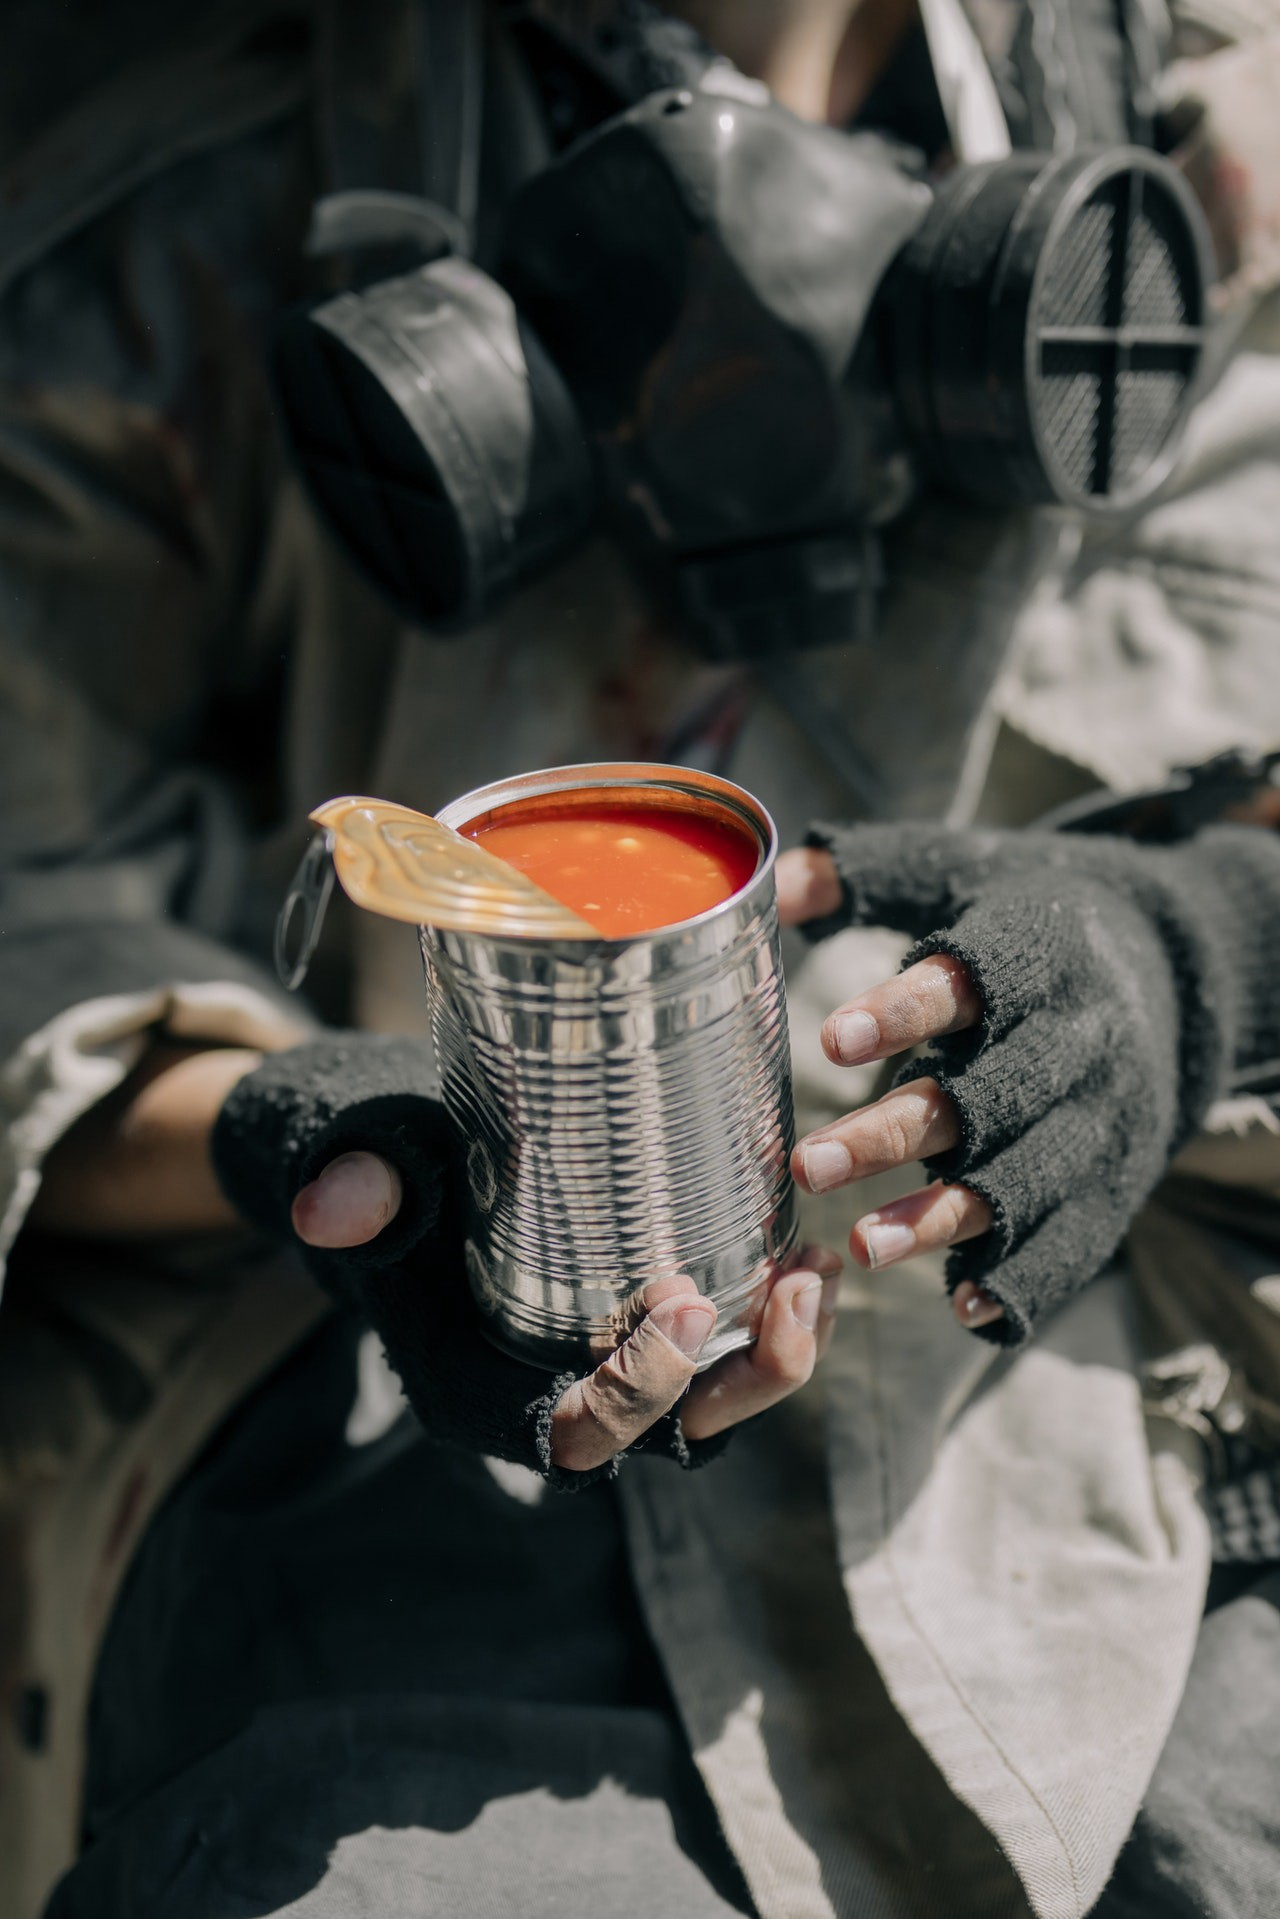 Closeup of a man's hands in fingerless gloves. He's holding a tin can of tomato soup.